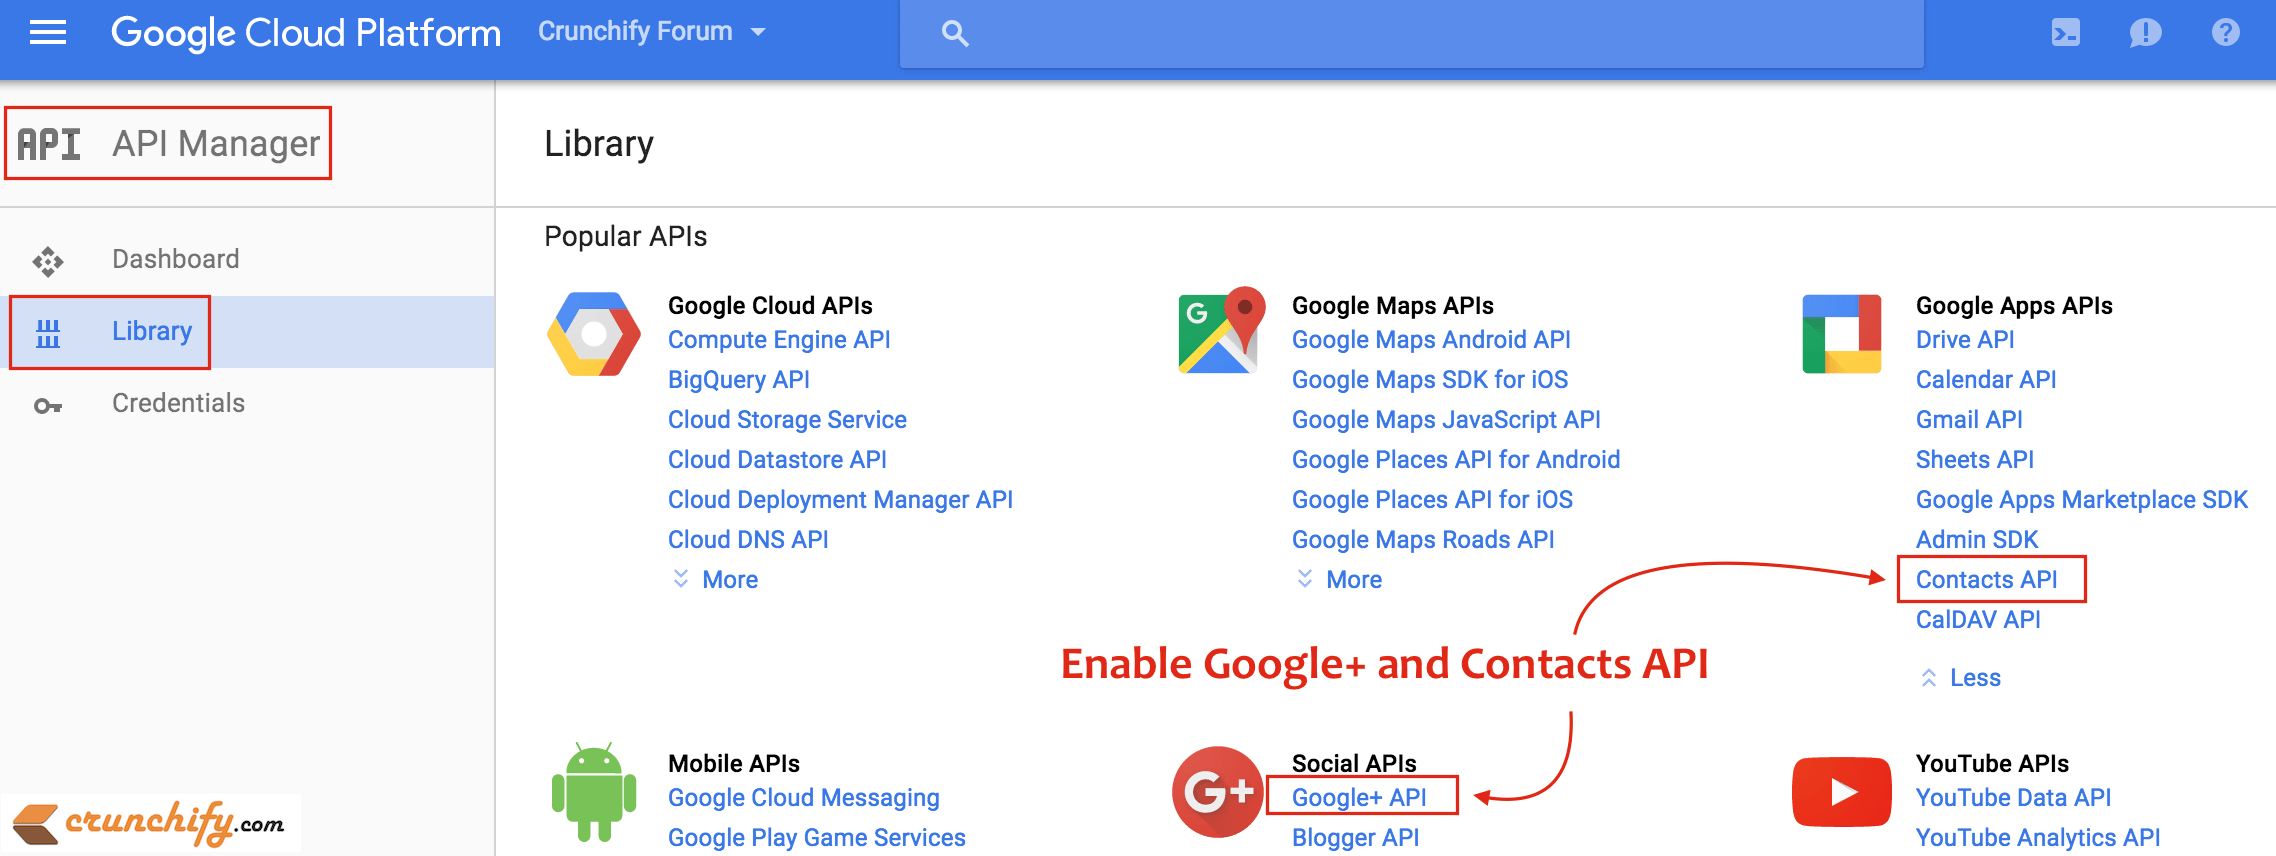 Enable Google+ API and Contact API in Google Cloud Console - Crunchify Tips